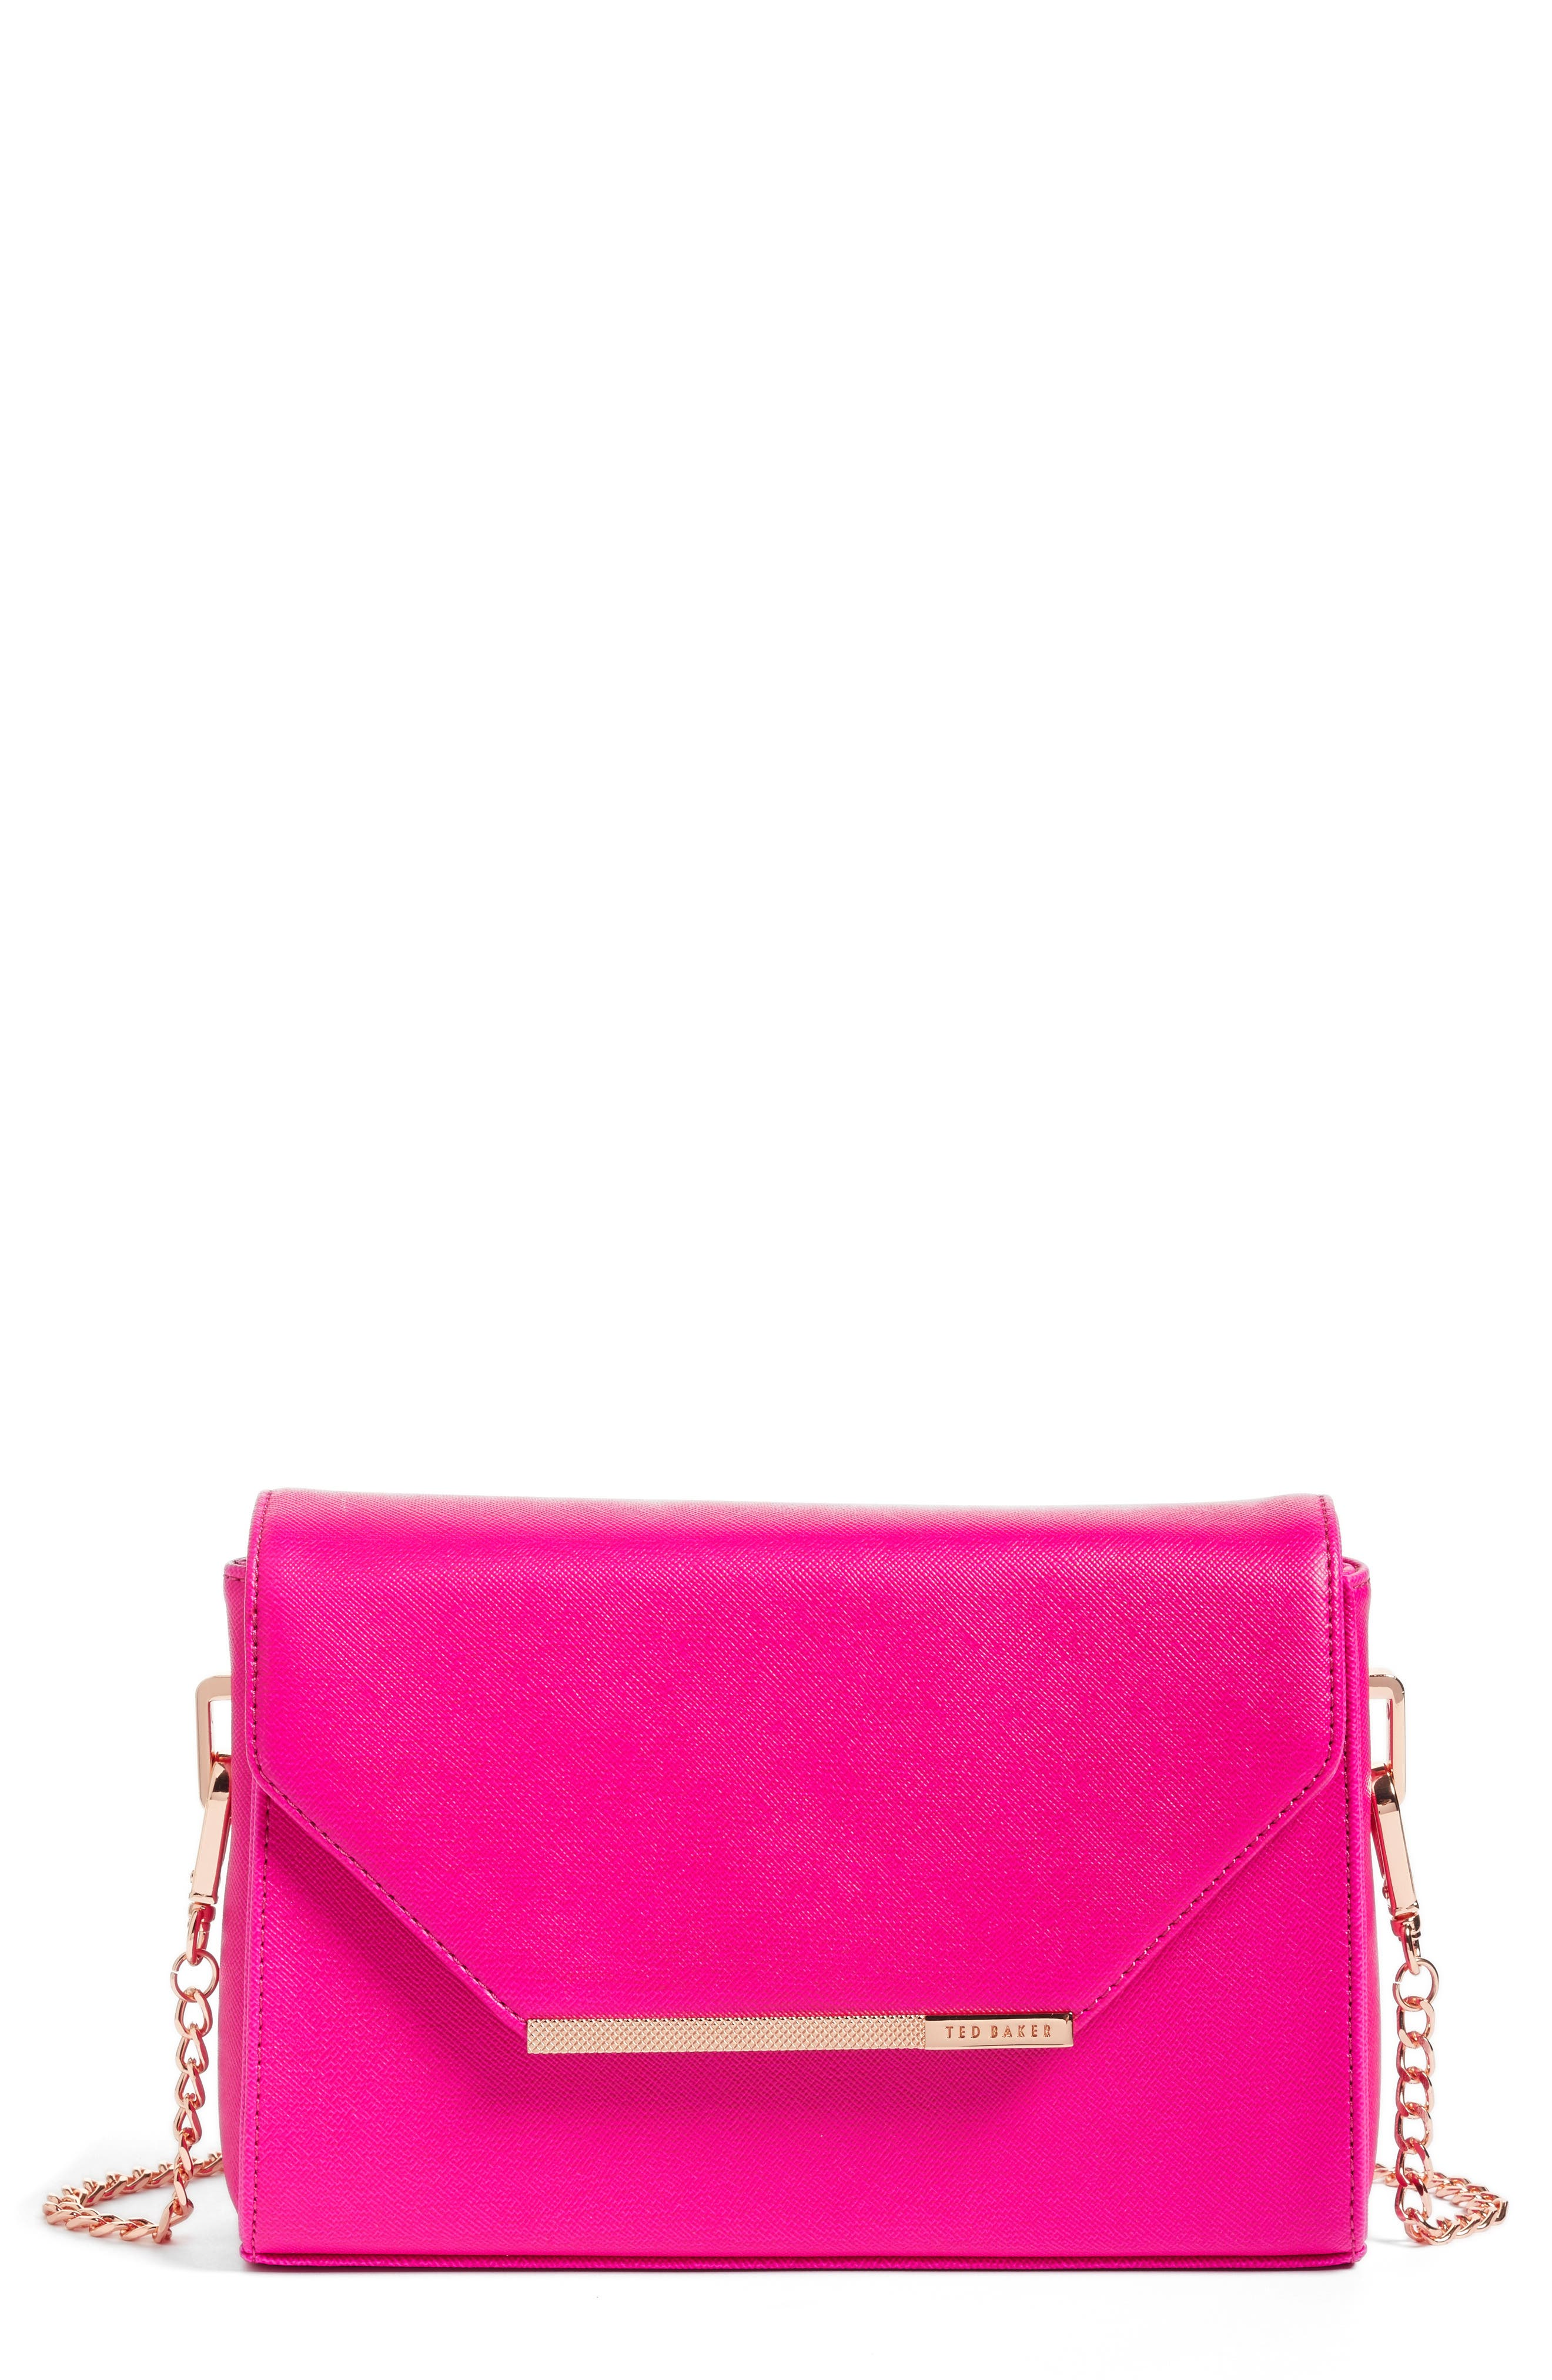 TED BAKER LONDON Textured Bar Faux Leather Crossbody Bag